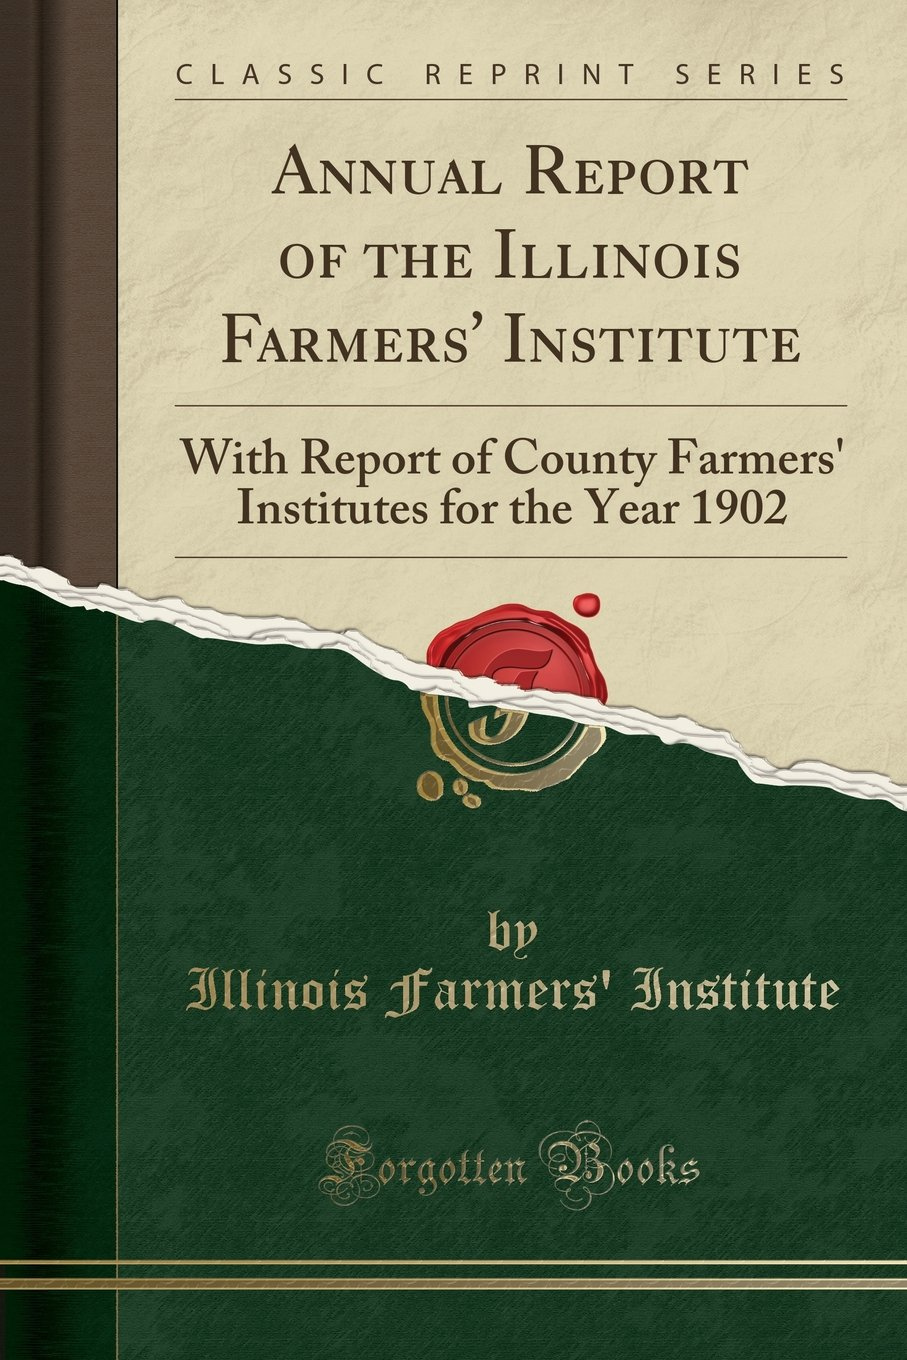 Annual Report of the Illinois Farmers' Institute: With Report of County Farmers' Institutes for the Year 1902 (Classic Reprint) pdf